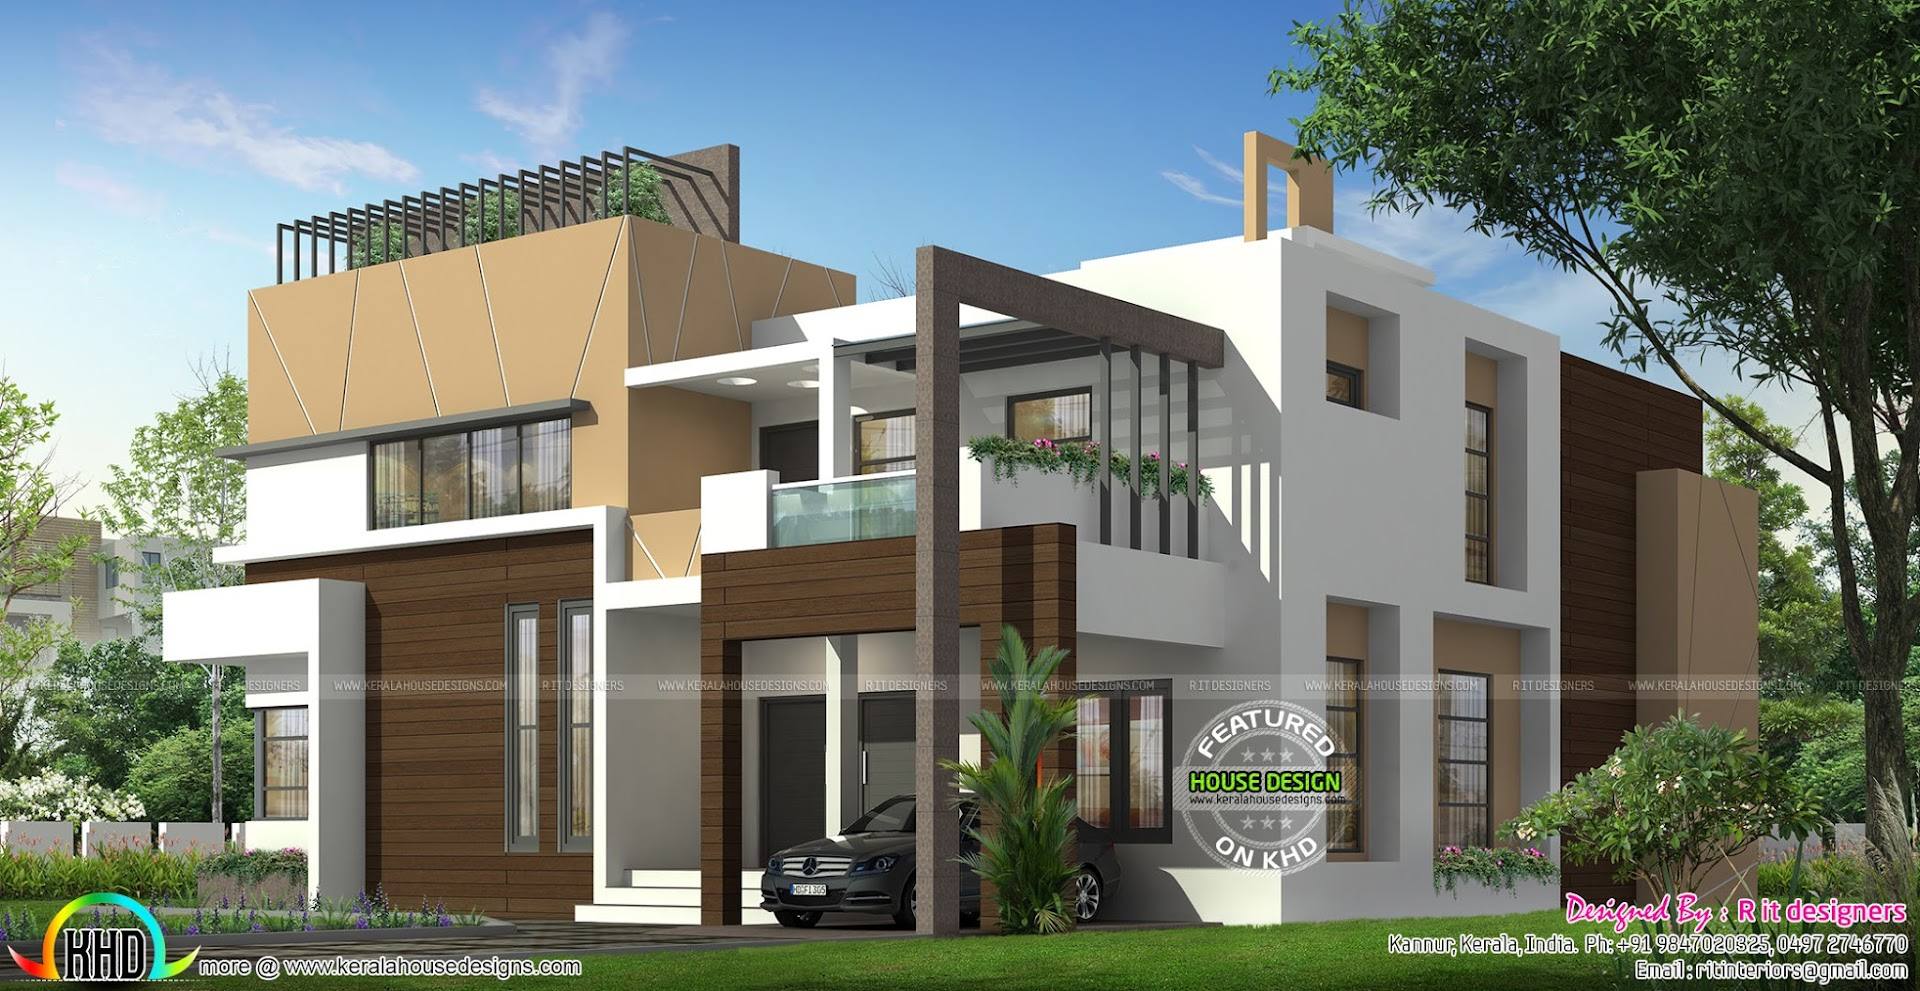 Luxurious 5 bedroom ultra modern home kerala home design for 5 bedroom modern farmhouse plans